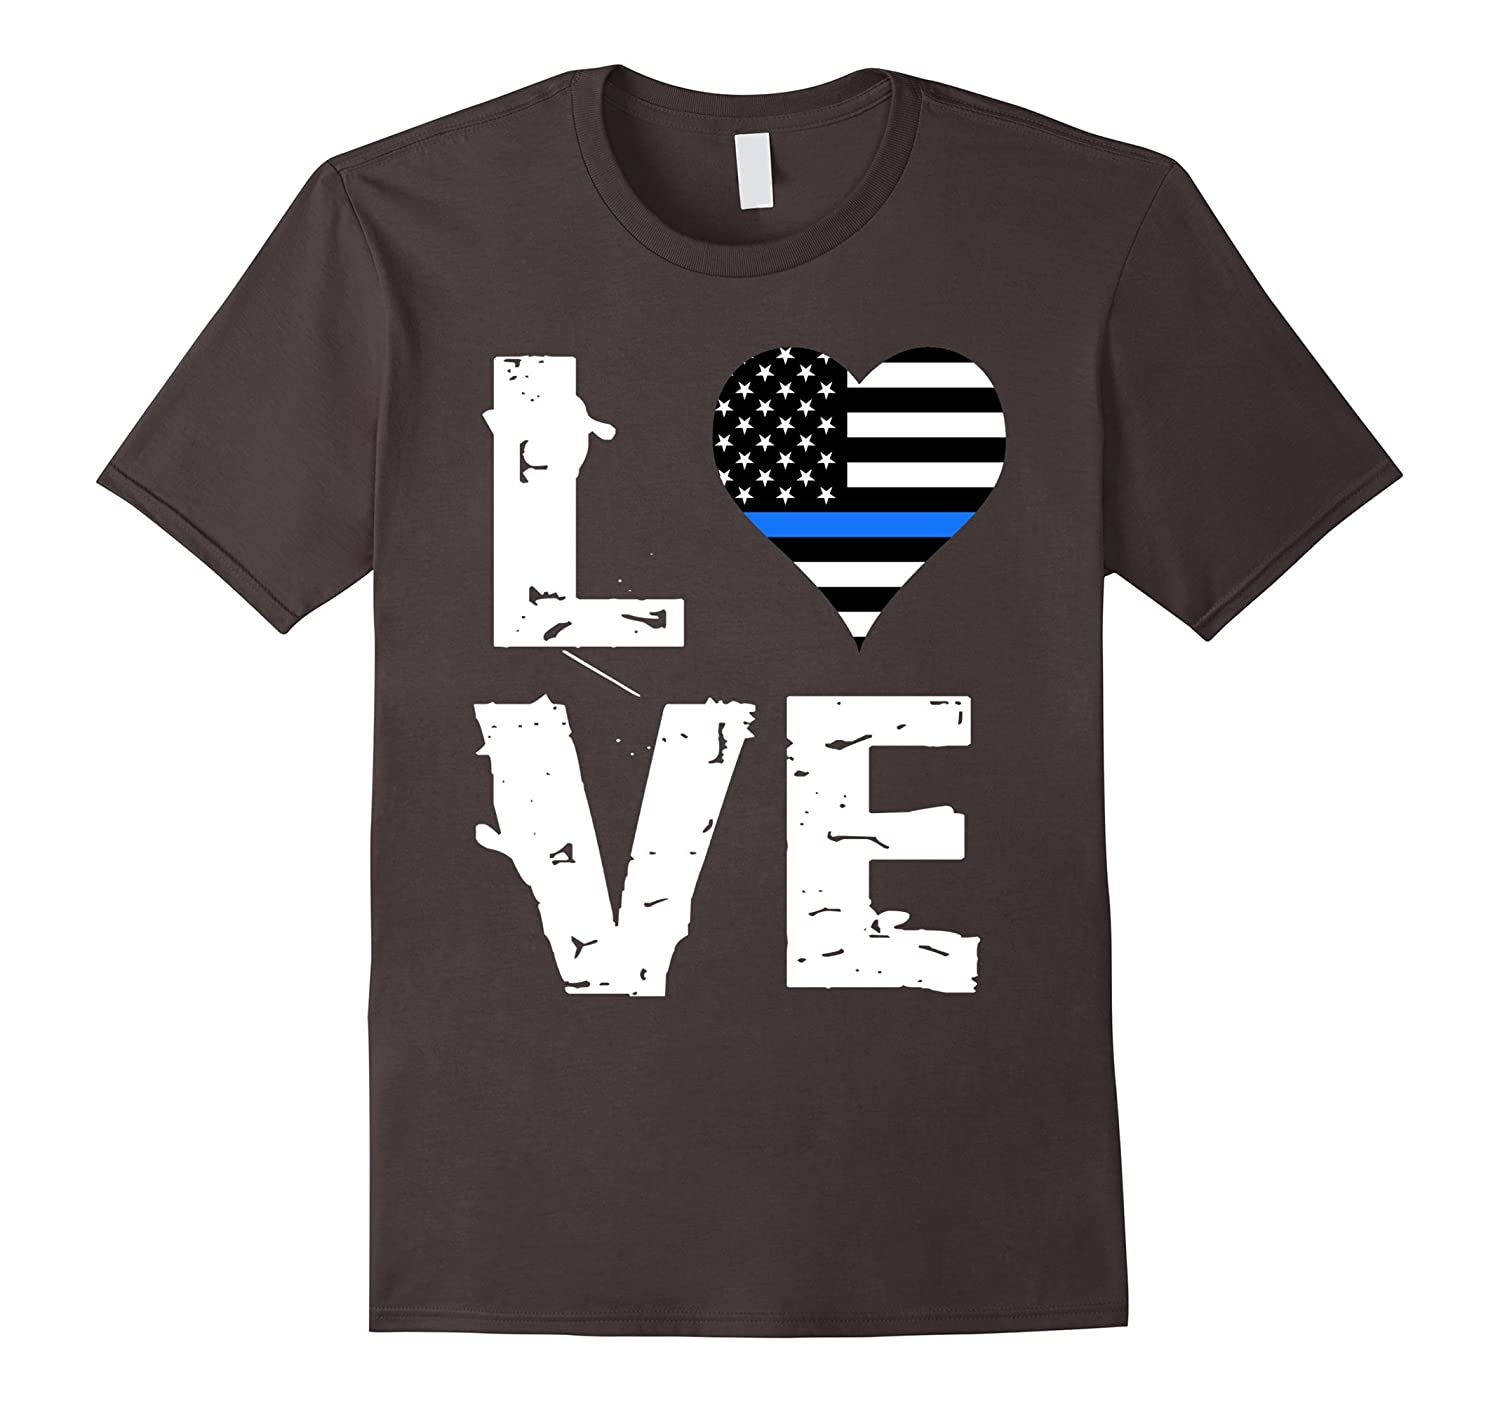 Love Thin Blue Line Shirt Support of Police Law Enforcement-ah my shirt one gift